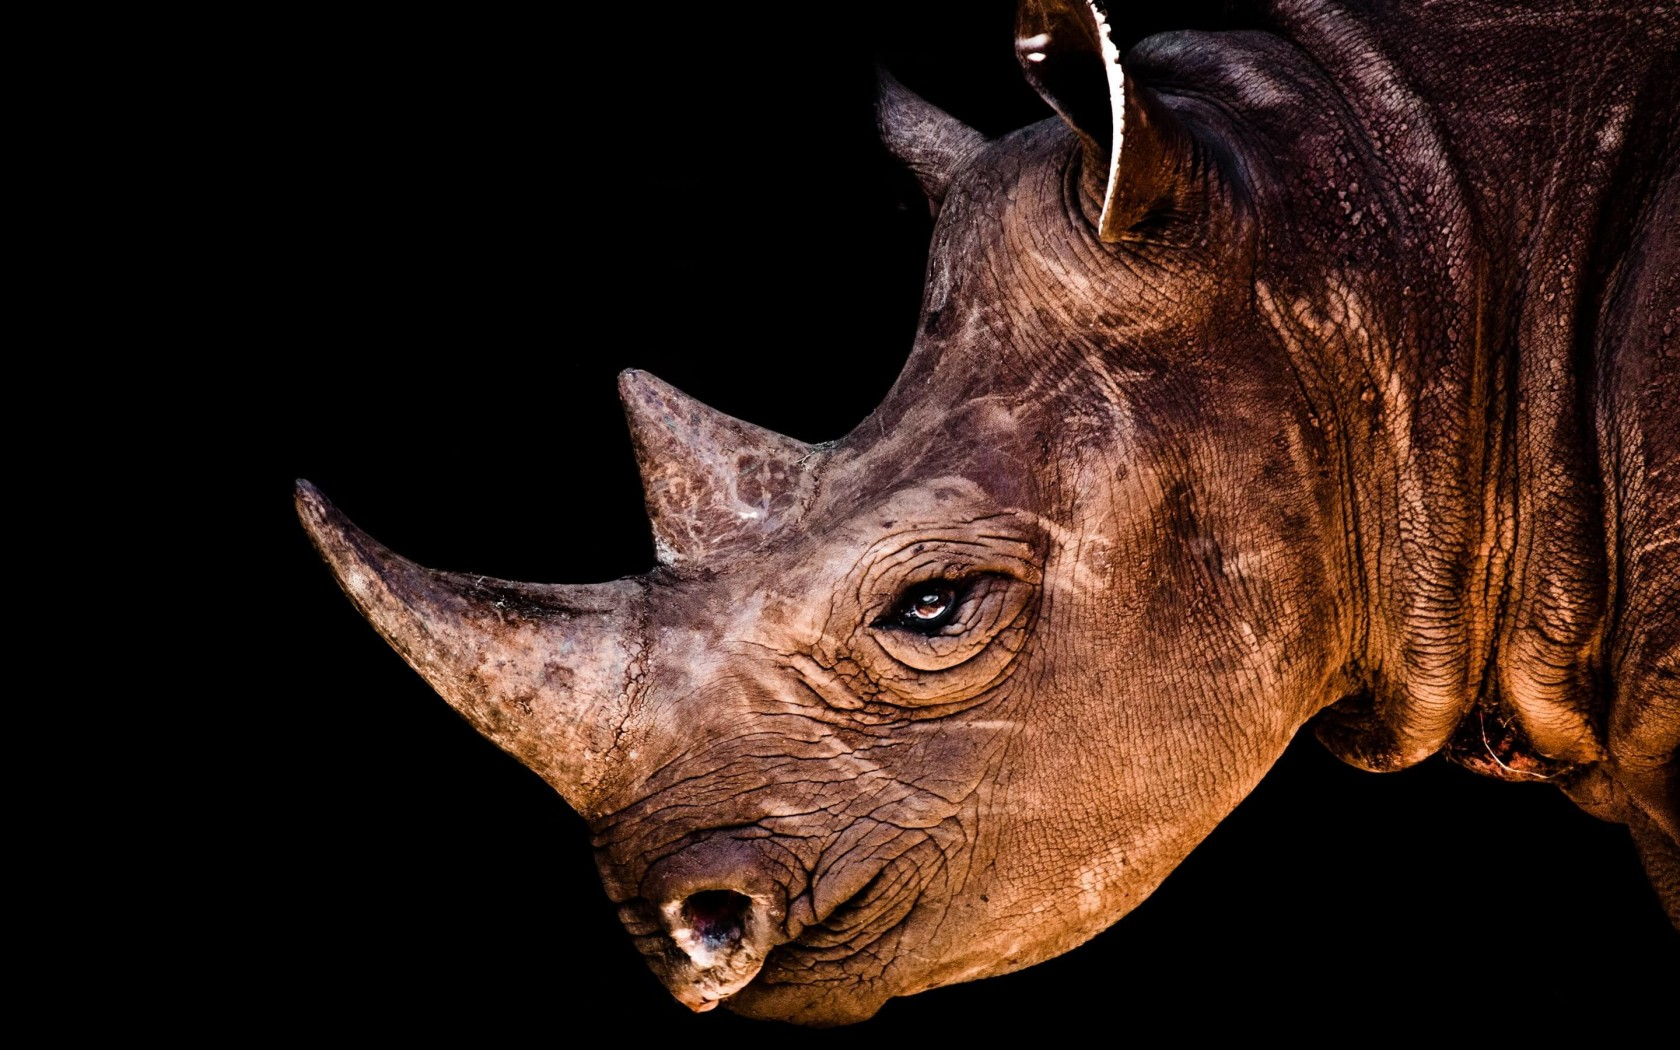 Rhinoceros Portrait Wallpaper for Desktop 1680x1050